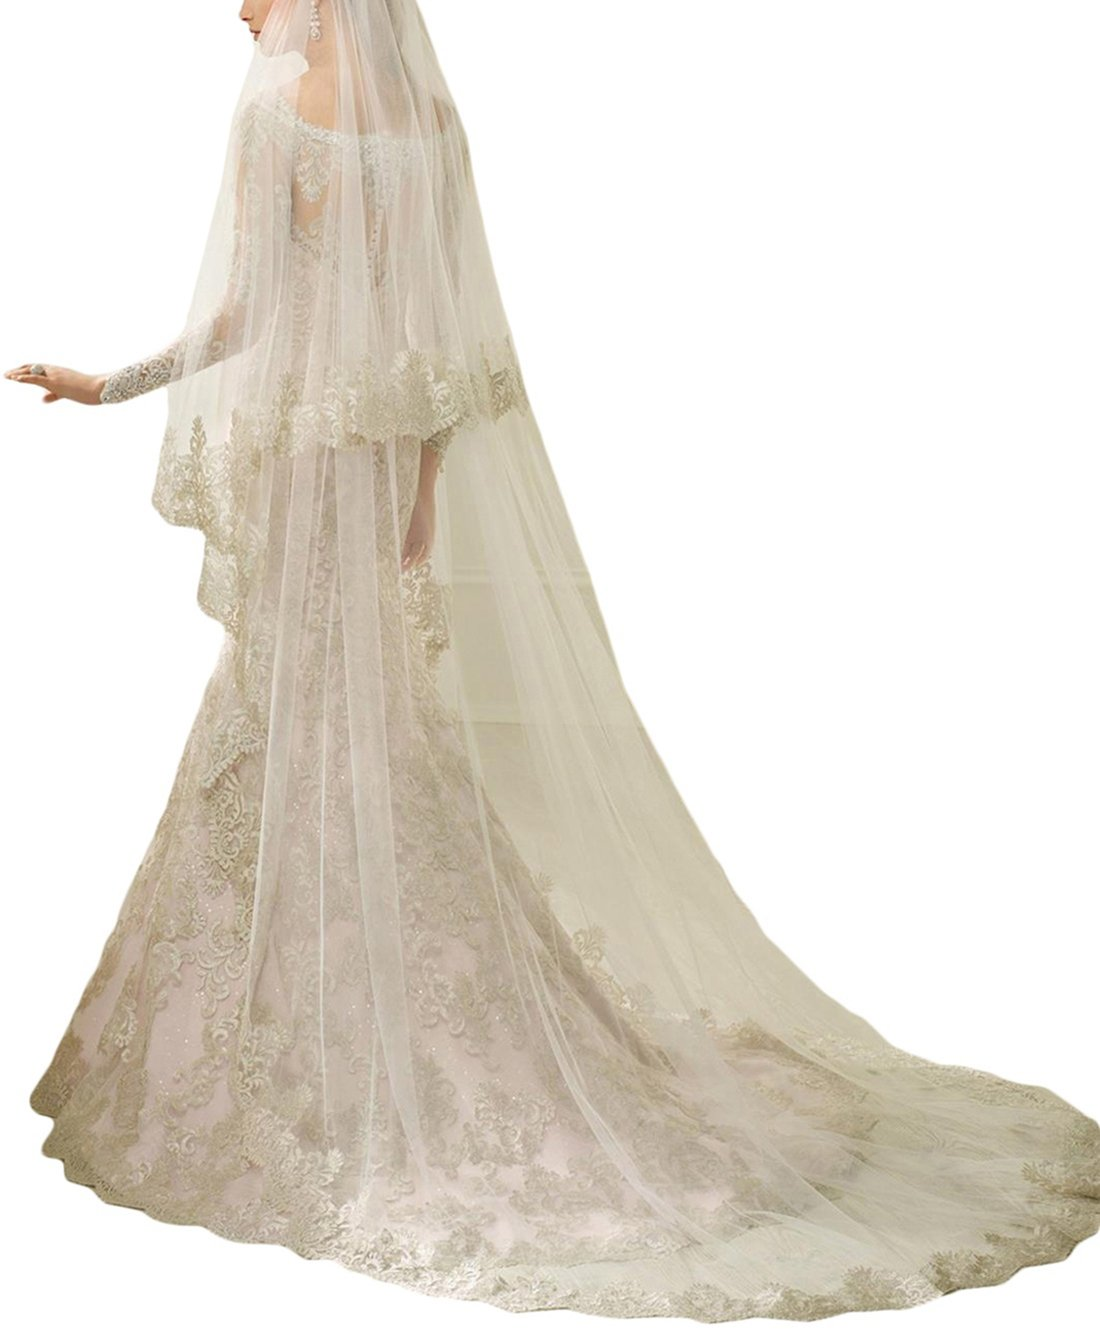 Newdeve Lace Wedding Veils Cathedral Length 2 Tiers Bridal Veil Long (Ivory)